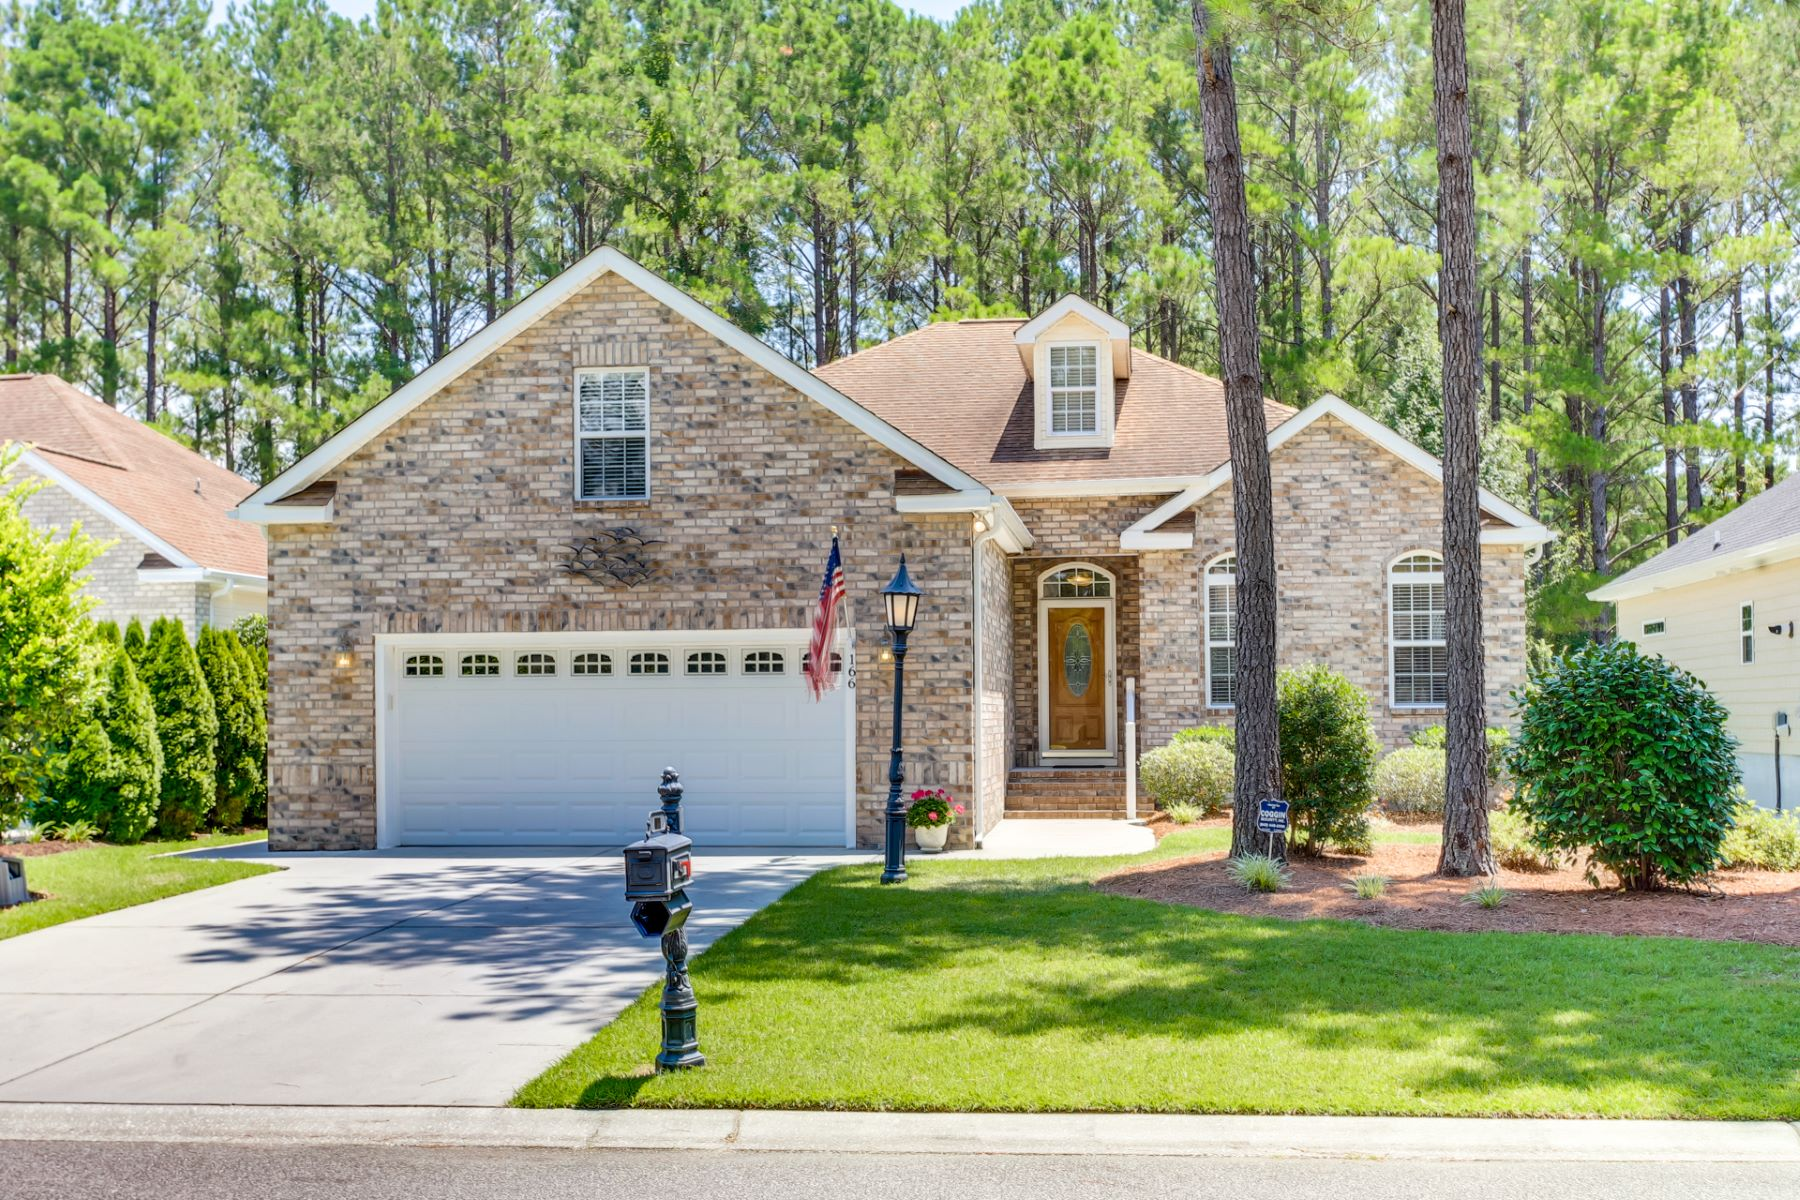 Single Family Homes for Active at Well Maintained Home in Gated Community 166 Bernard Drive NW Calabash, North Carolina 28467 United States